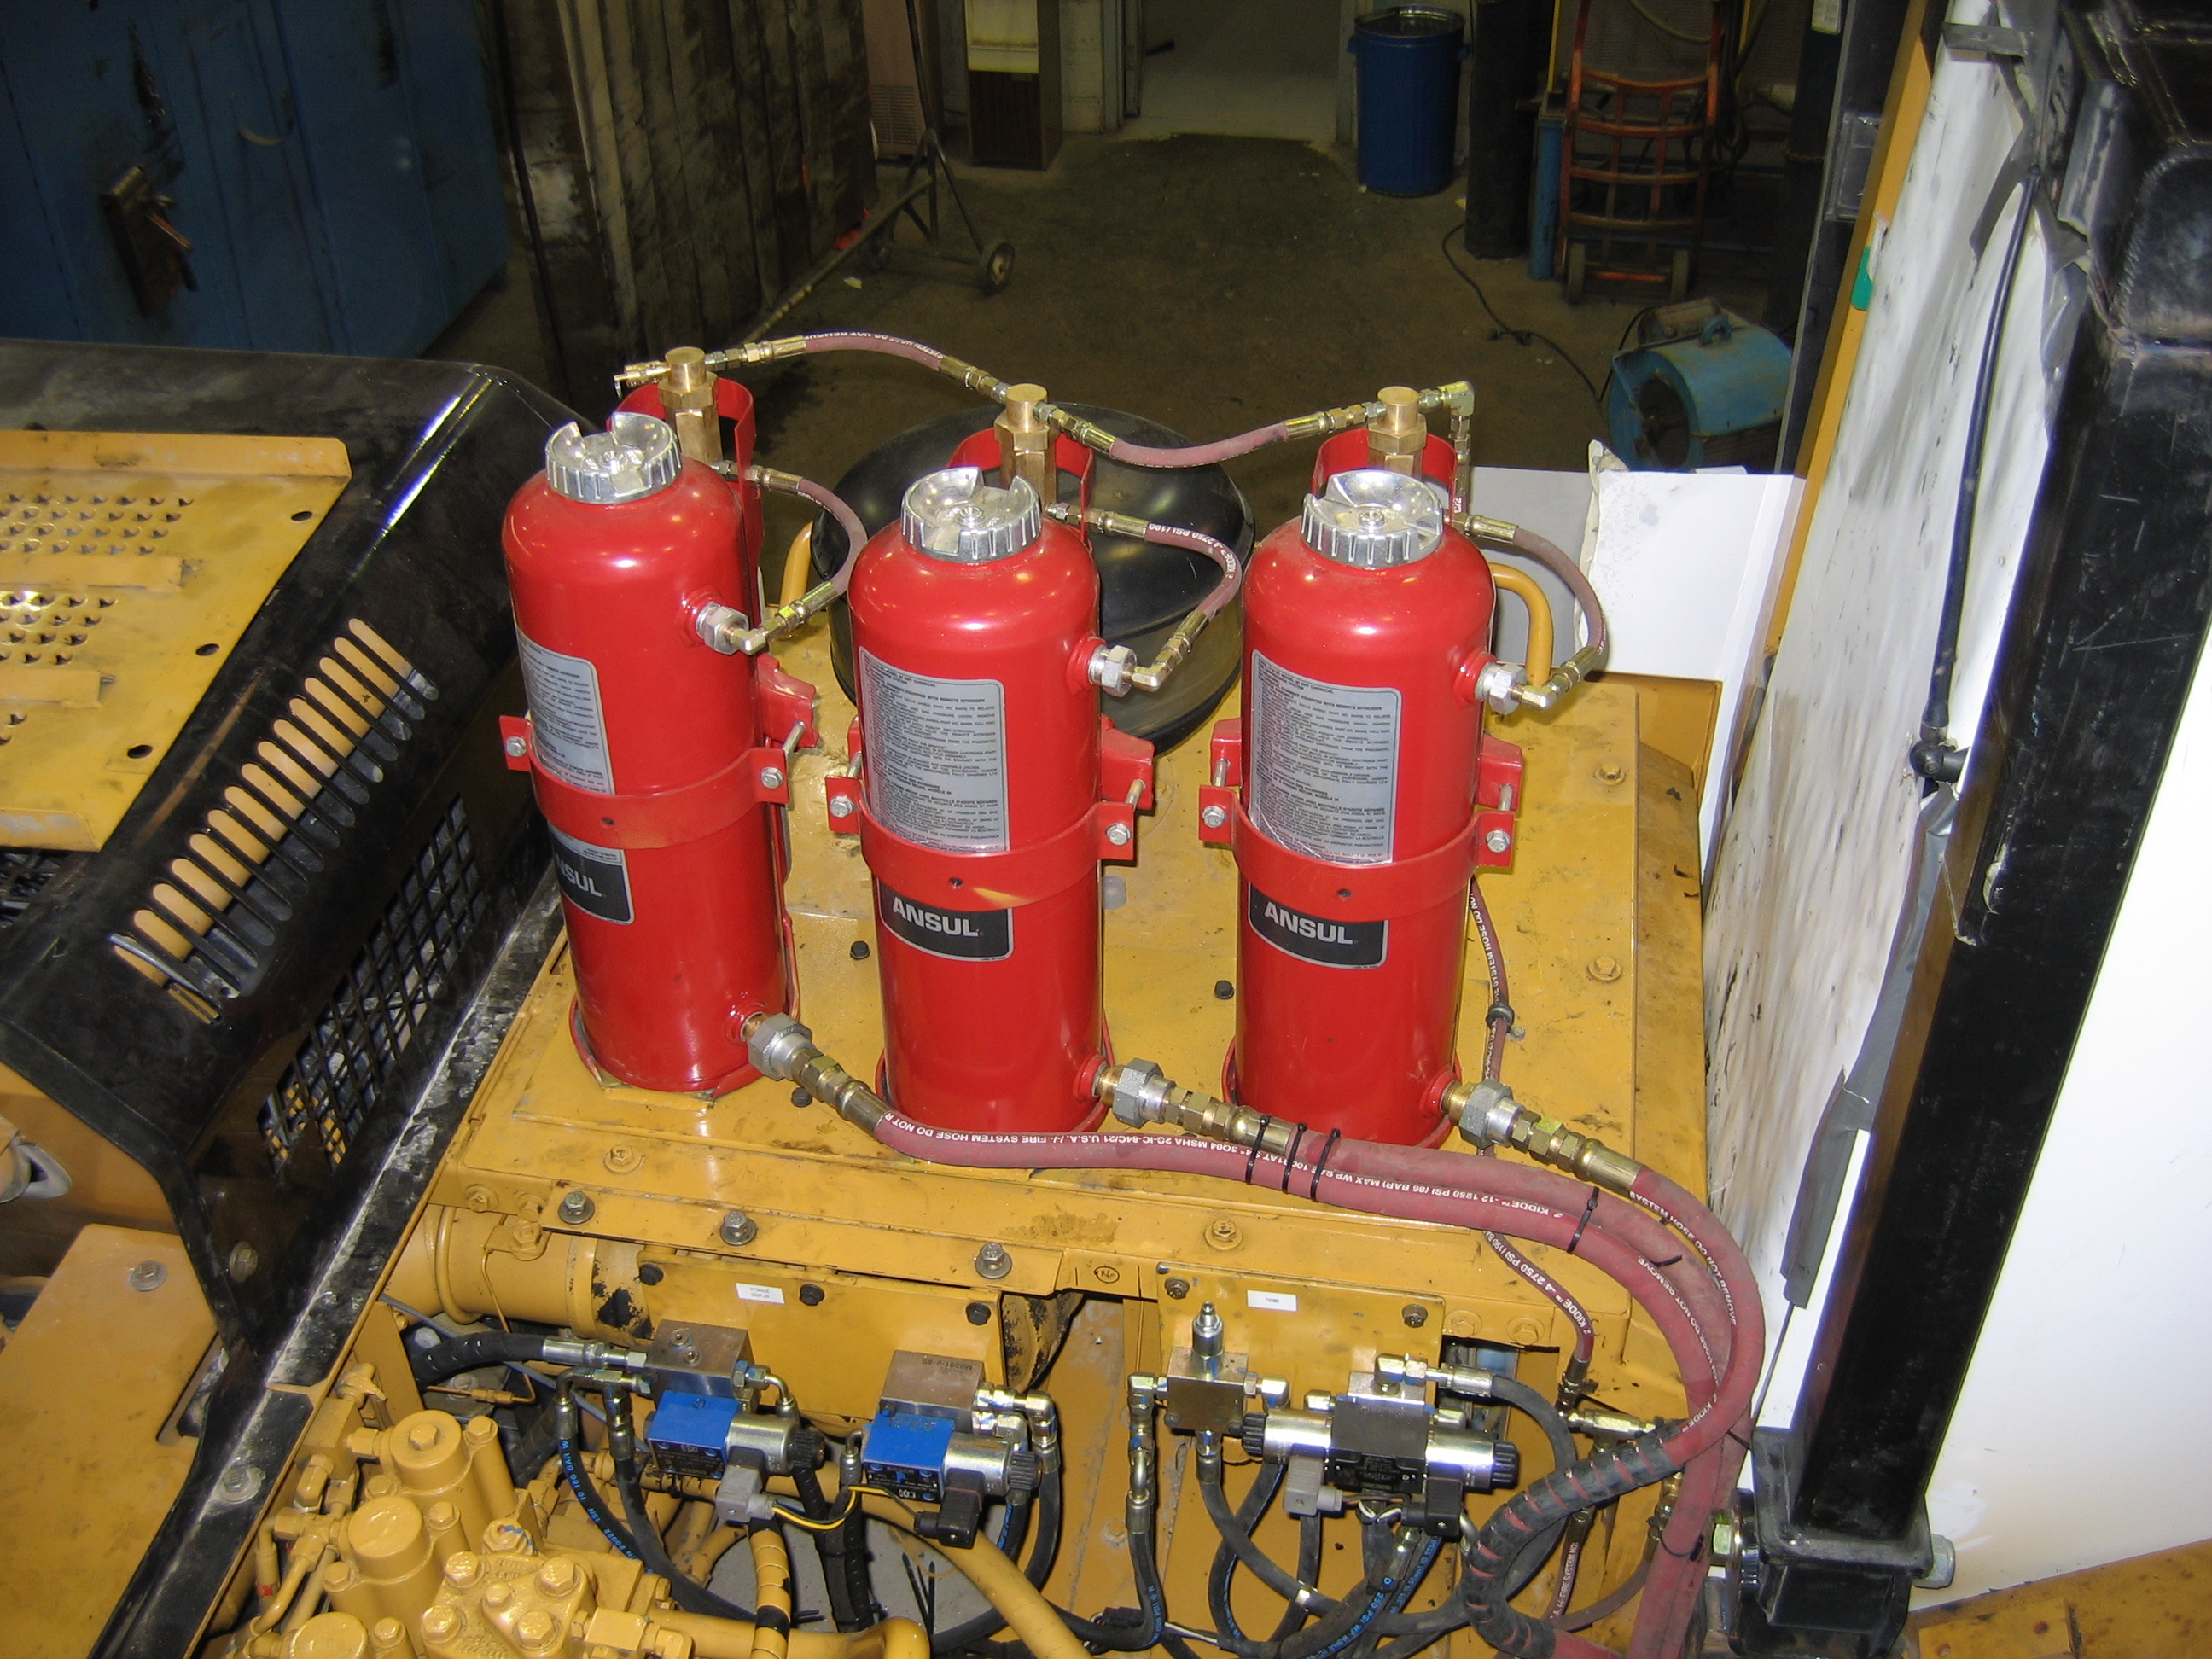 ansul system how it works wiring diagram for 1972 chevy truck vehicle fire suppression installation tn